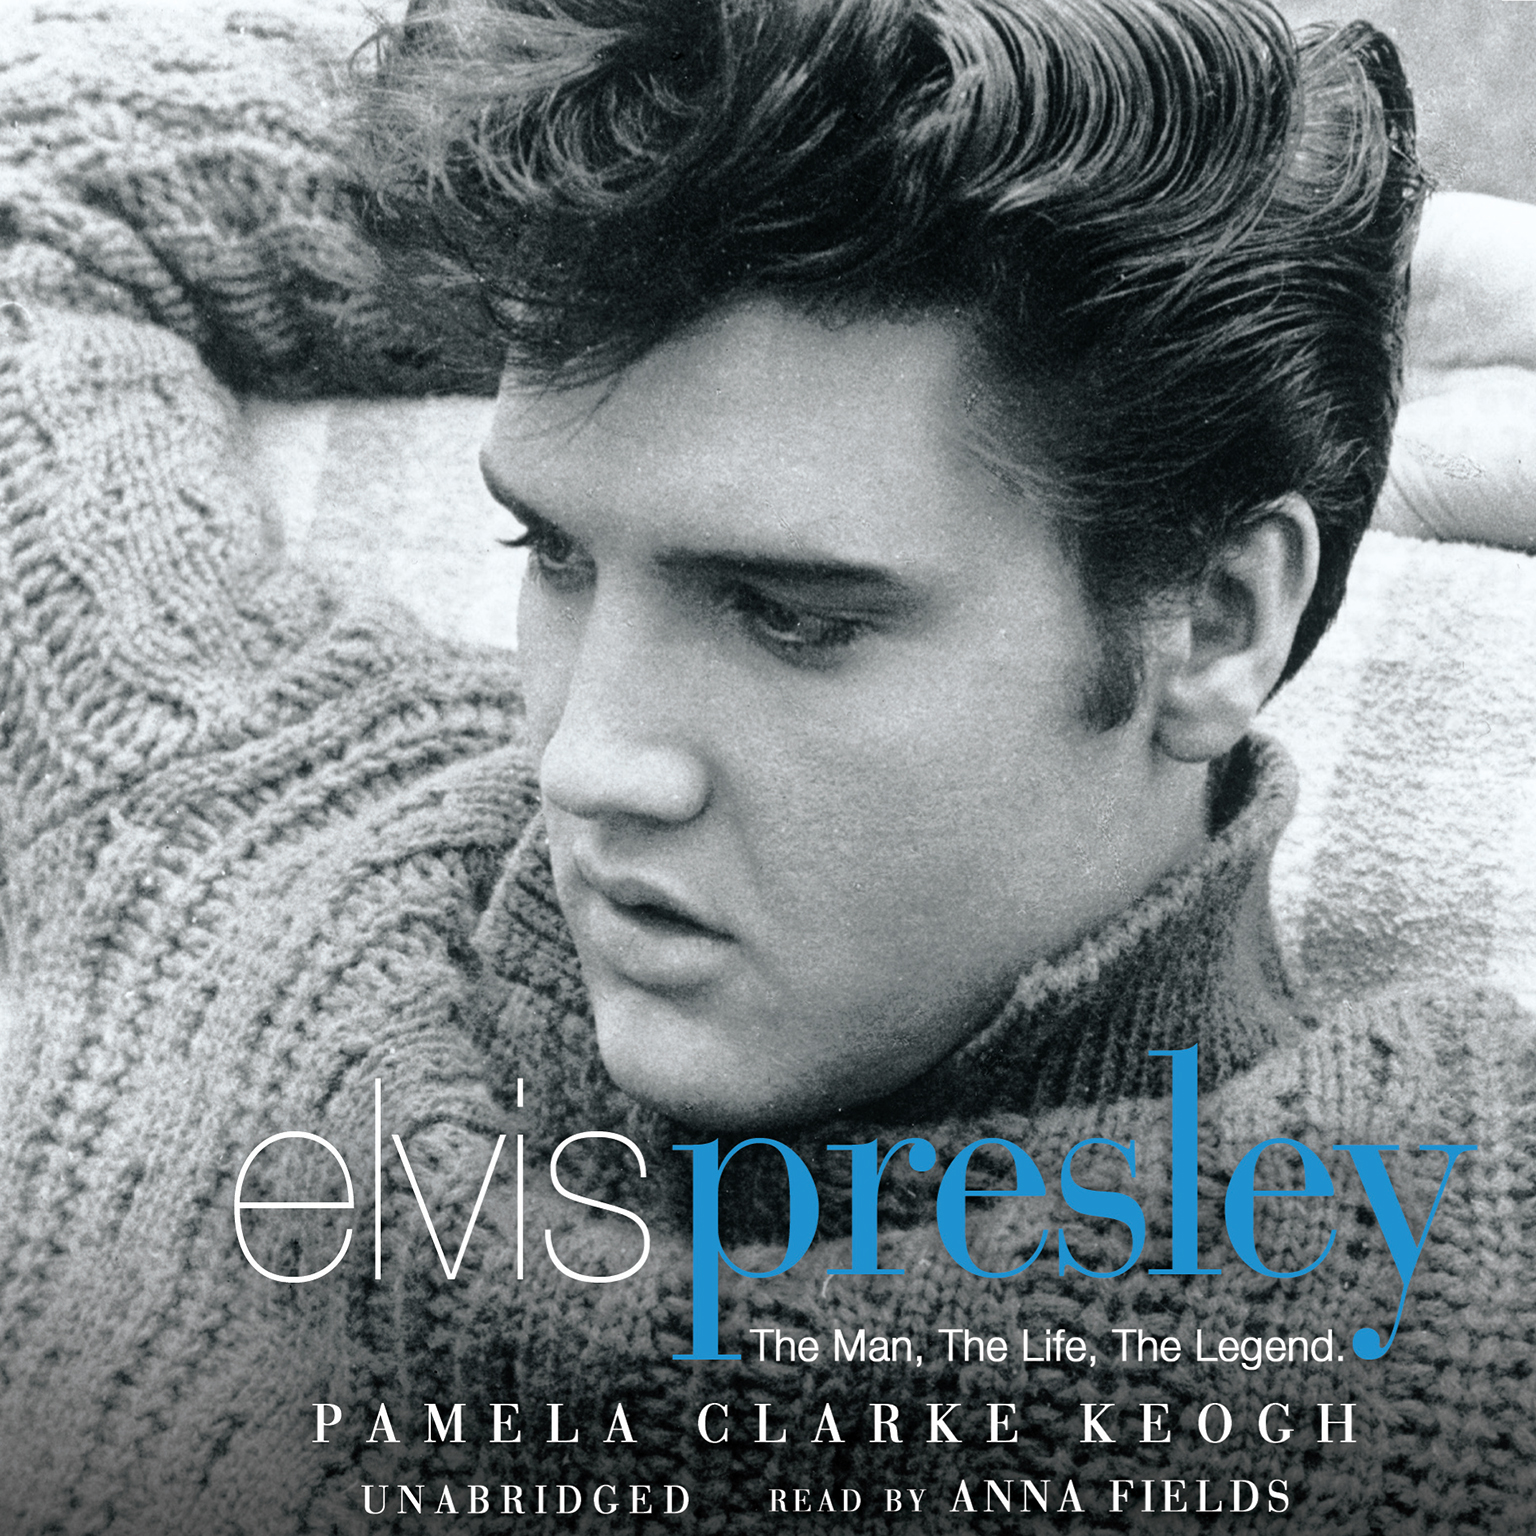 Printable Elvis Presley: The Man. The Life. The Legend. Audiobook Cover Art